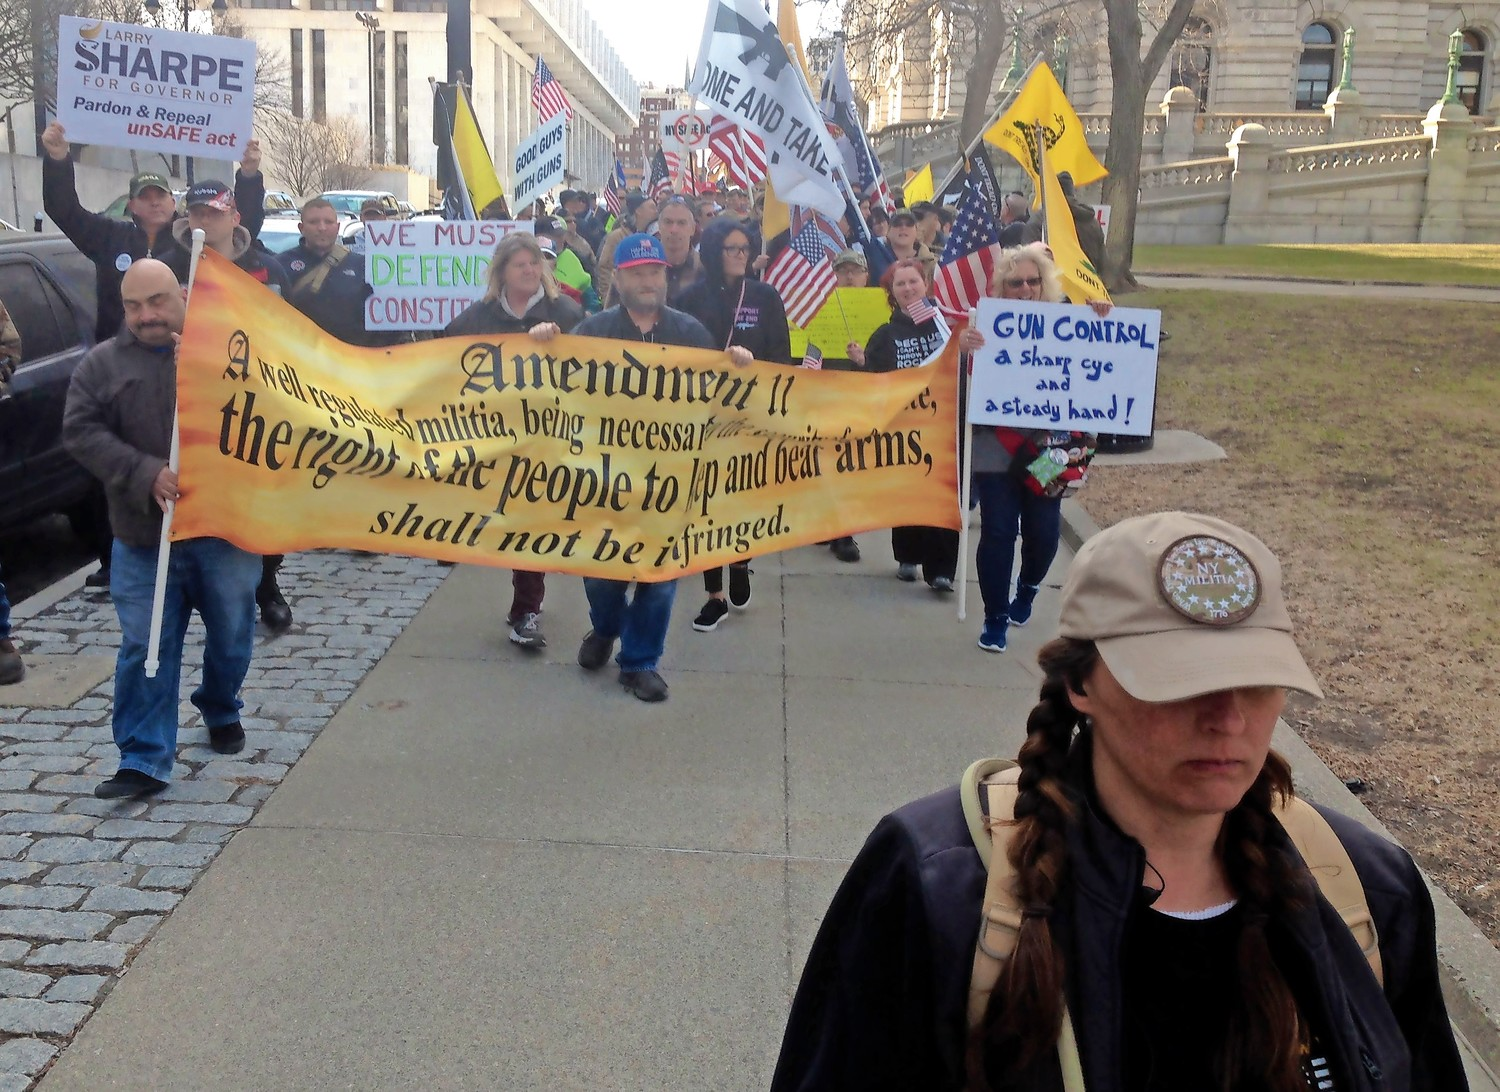 An estimated 300 to 400 gun-rights advocates rallied in front of the State Capitol in Albany last Saturday. Many protesters interviewed by the Herald said the AR-15 assault rifle must remain legal across the country.